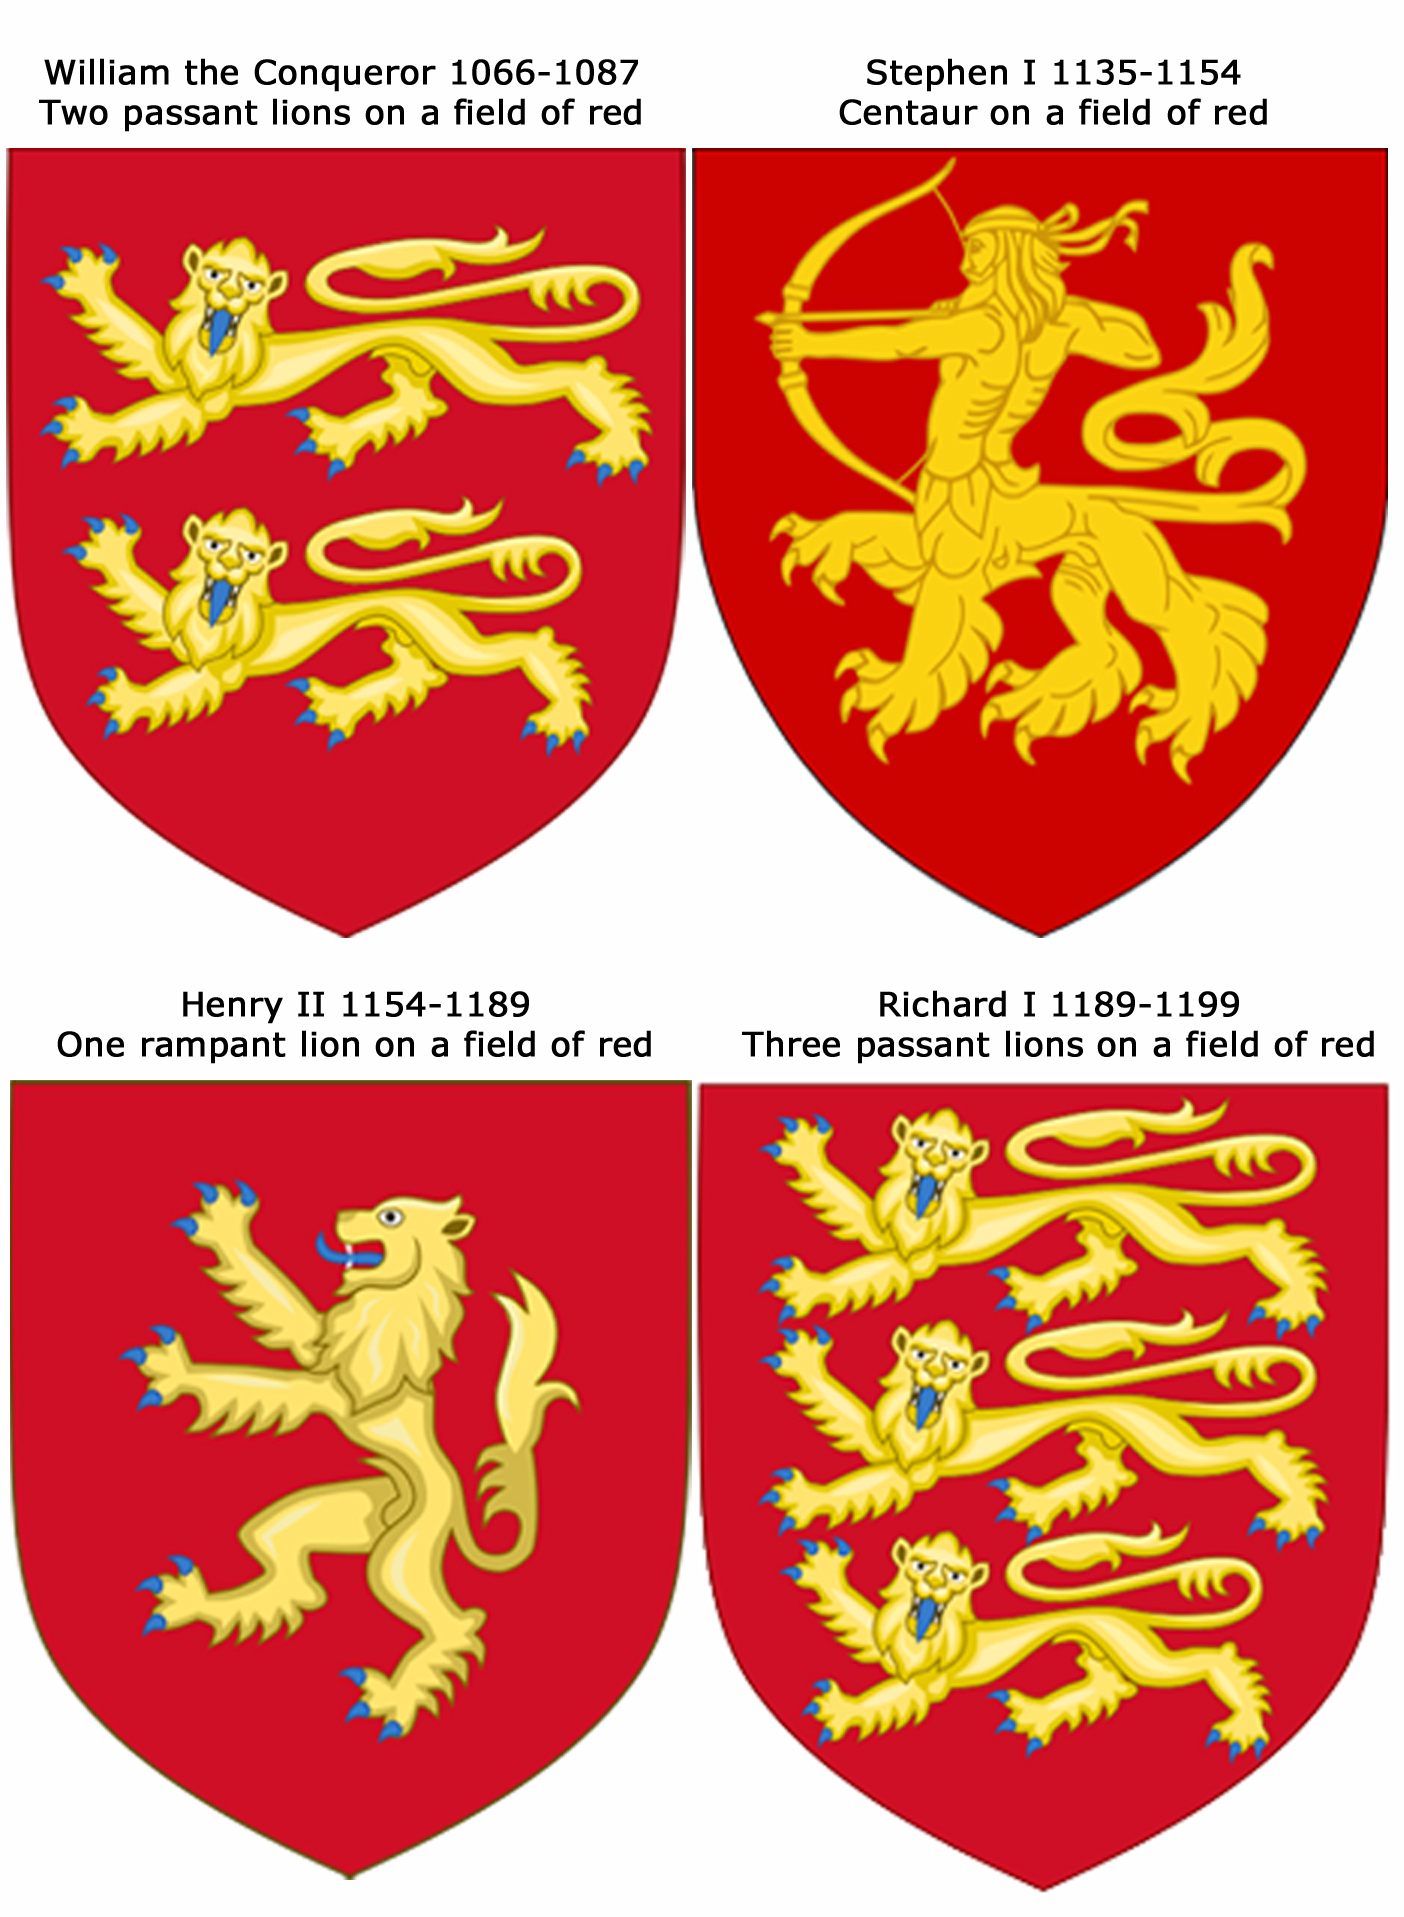 Royal Shields of England, 1066-1199